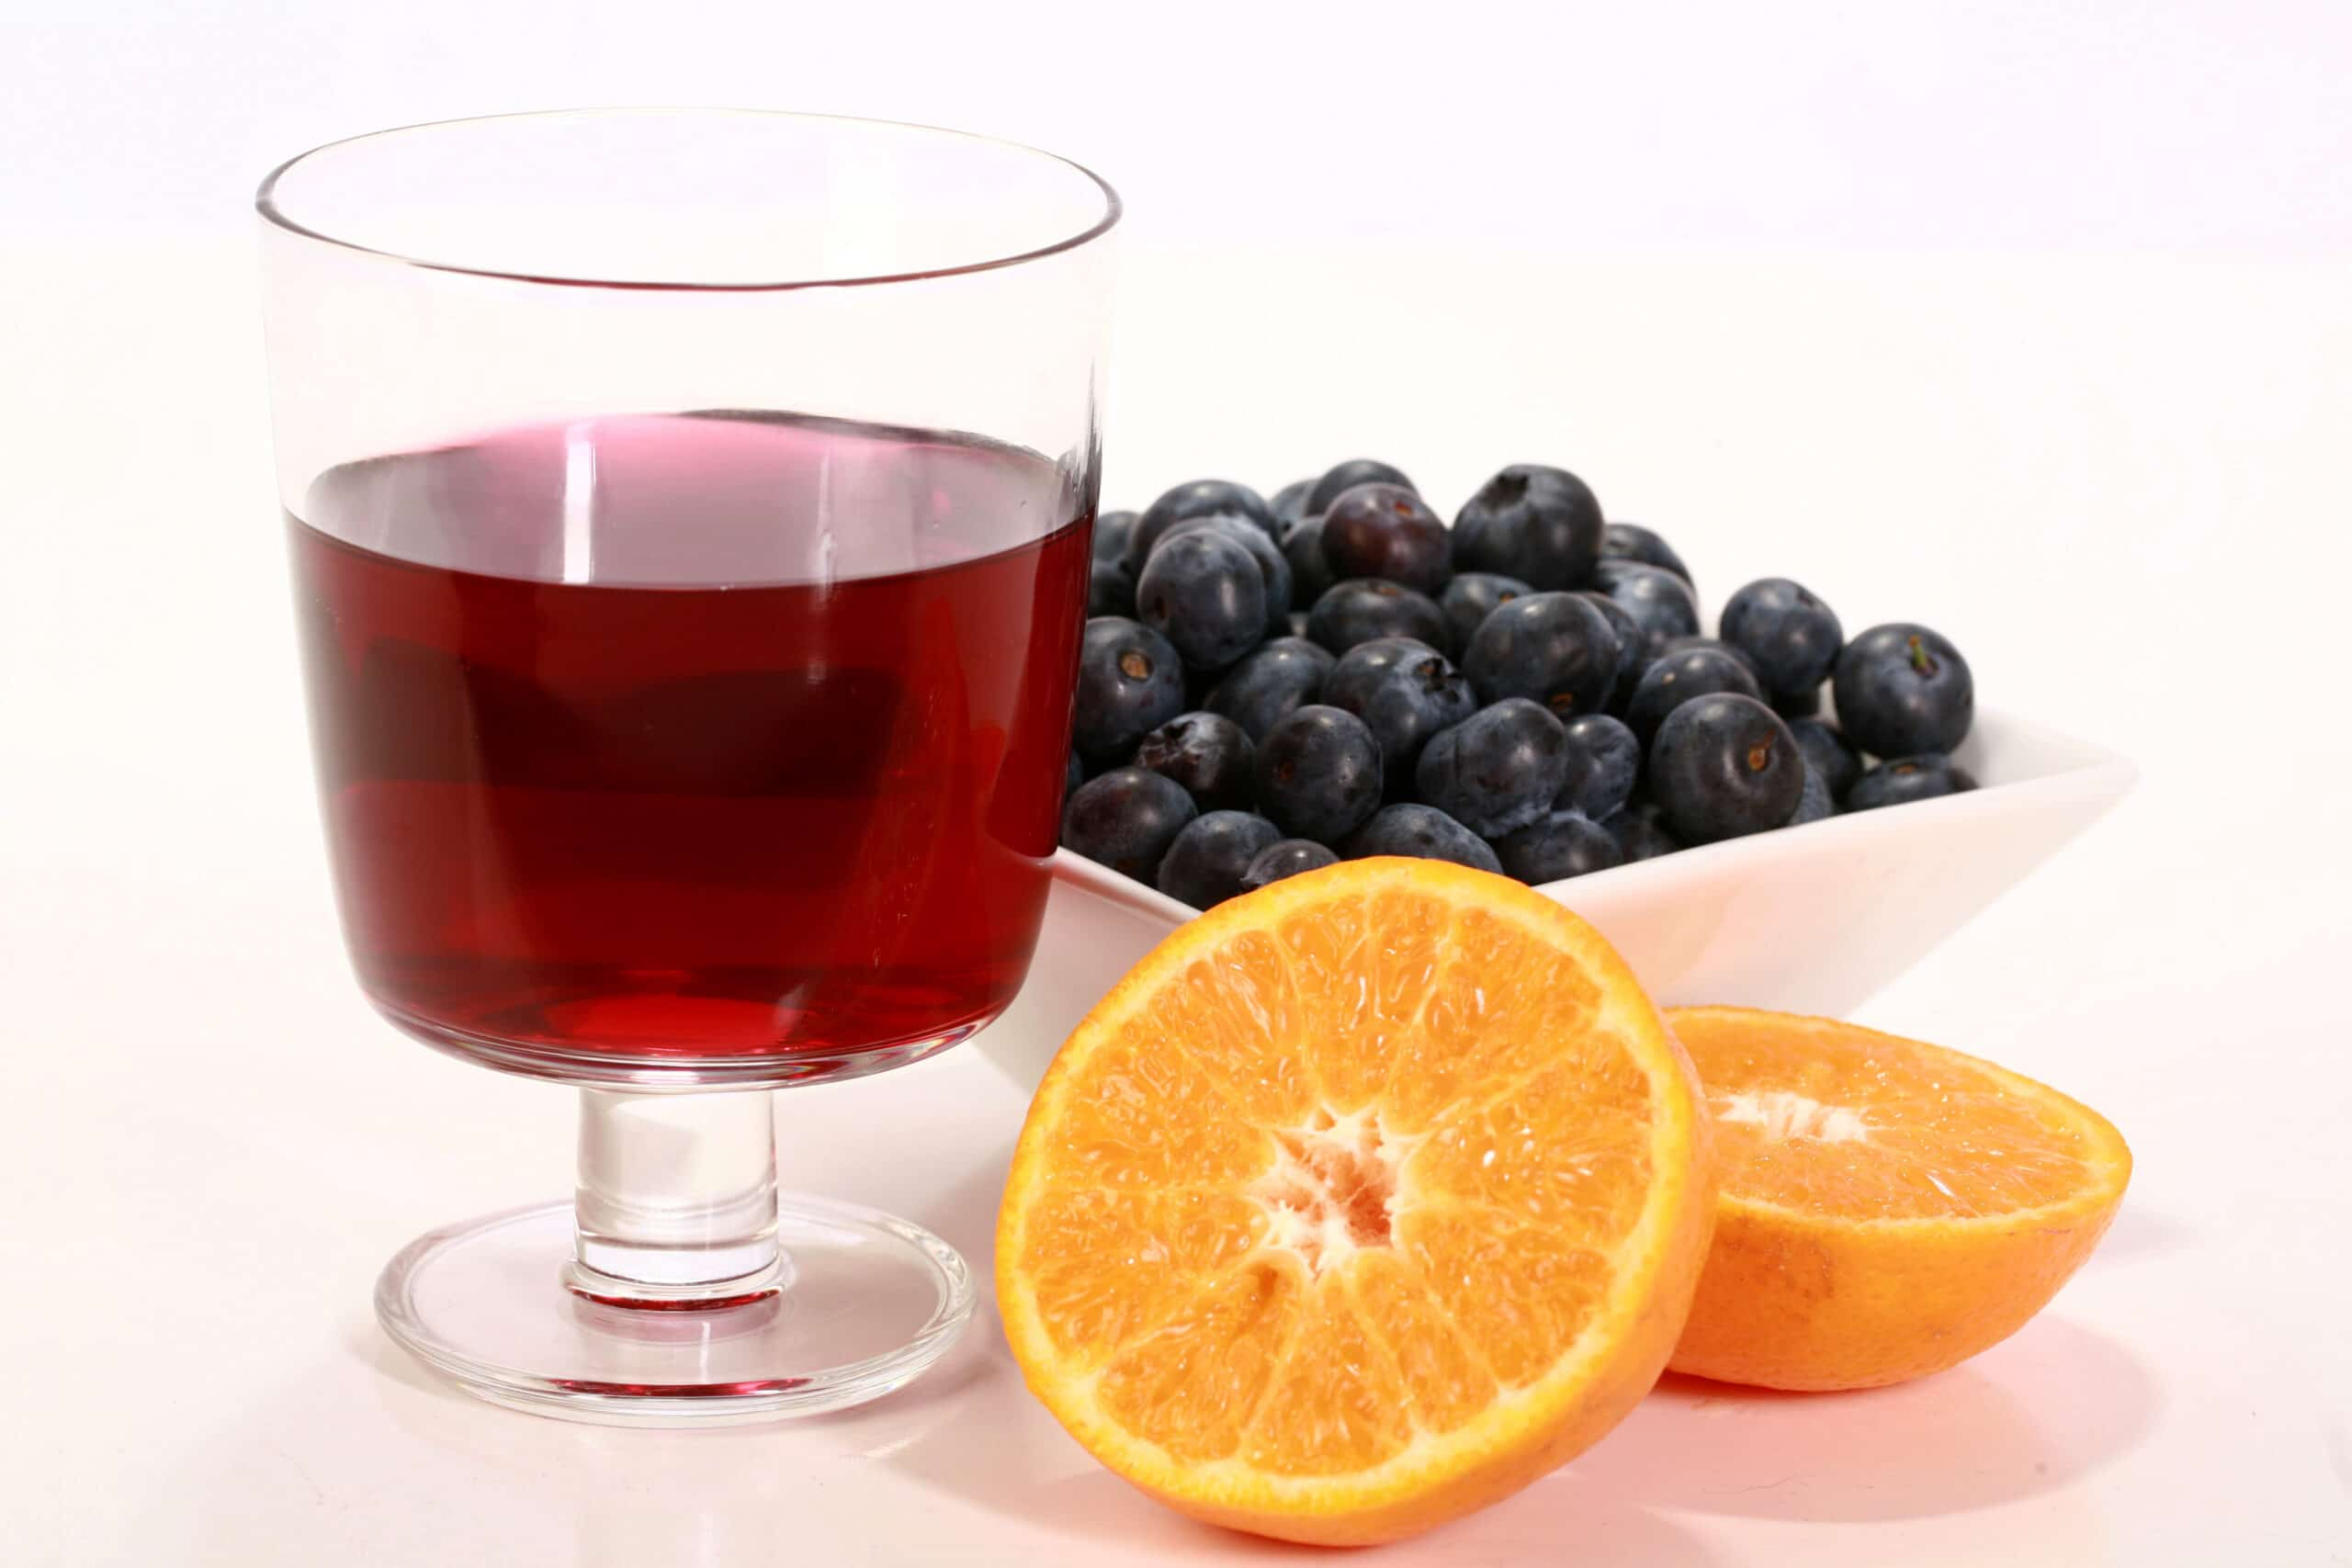 A wine glass of a medium purple blueberry clementine mead, with a dish of blueberries and a halved clementine next to it.